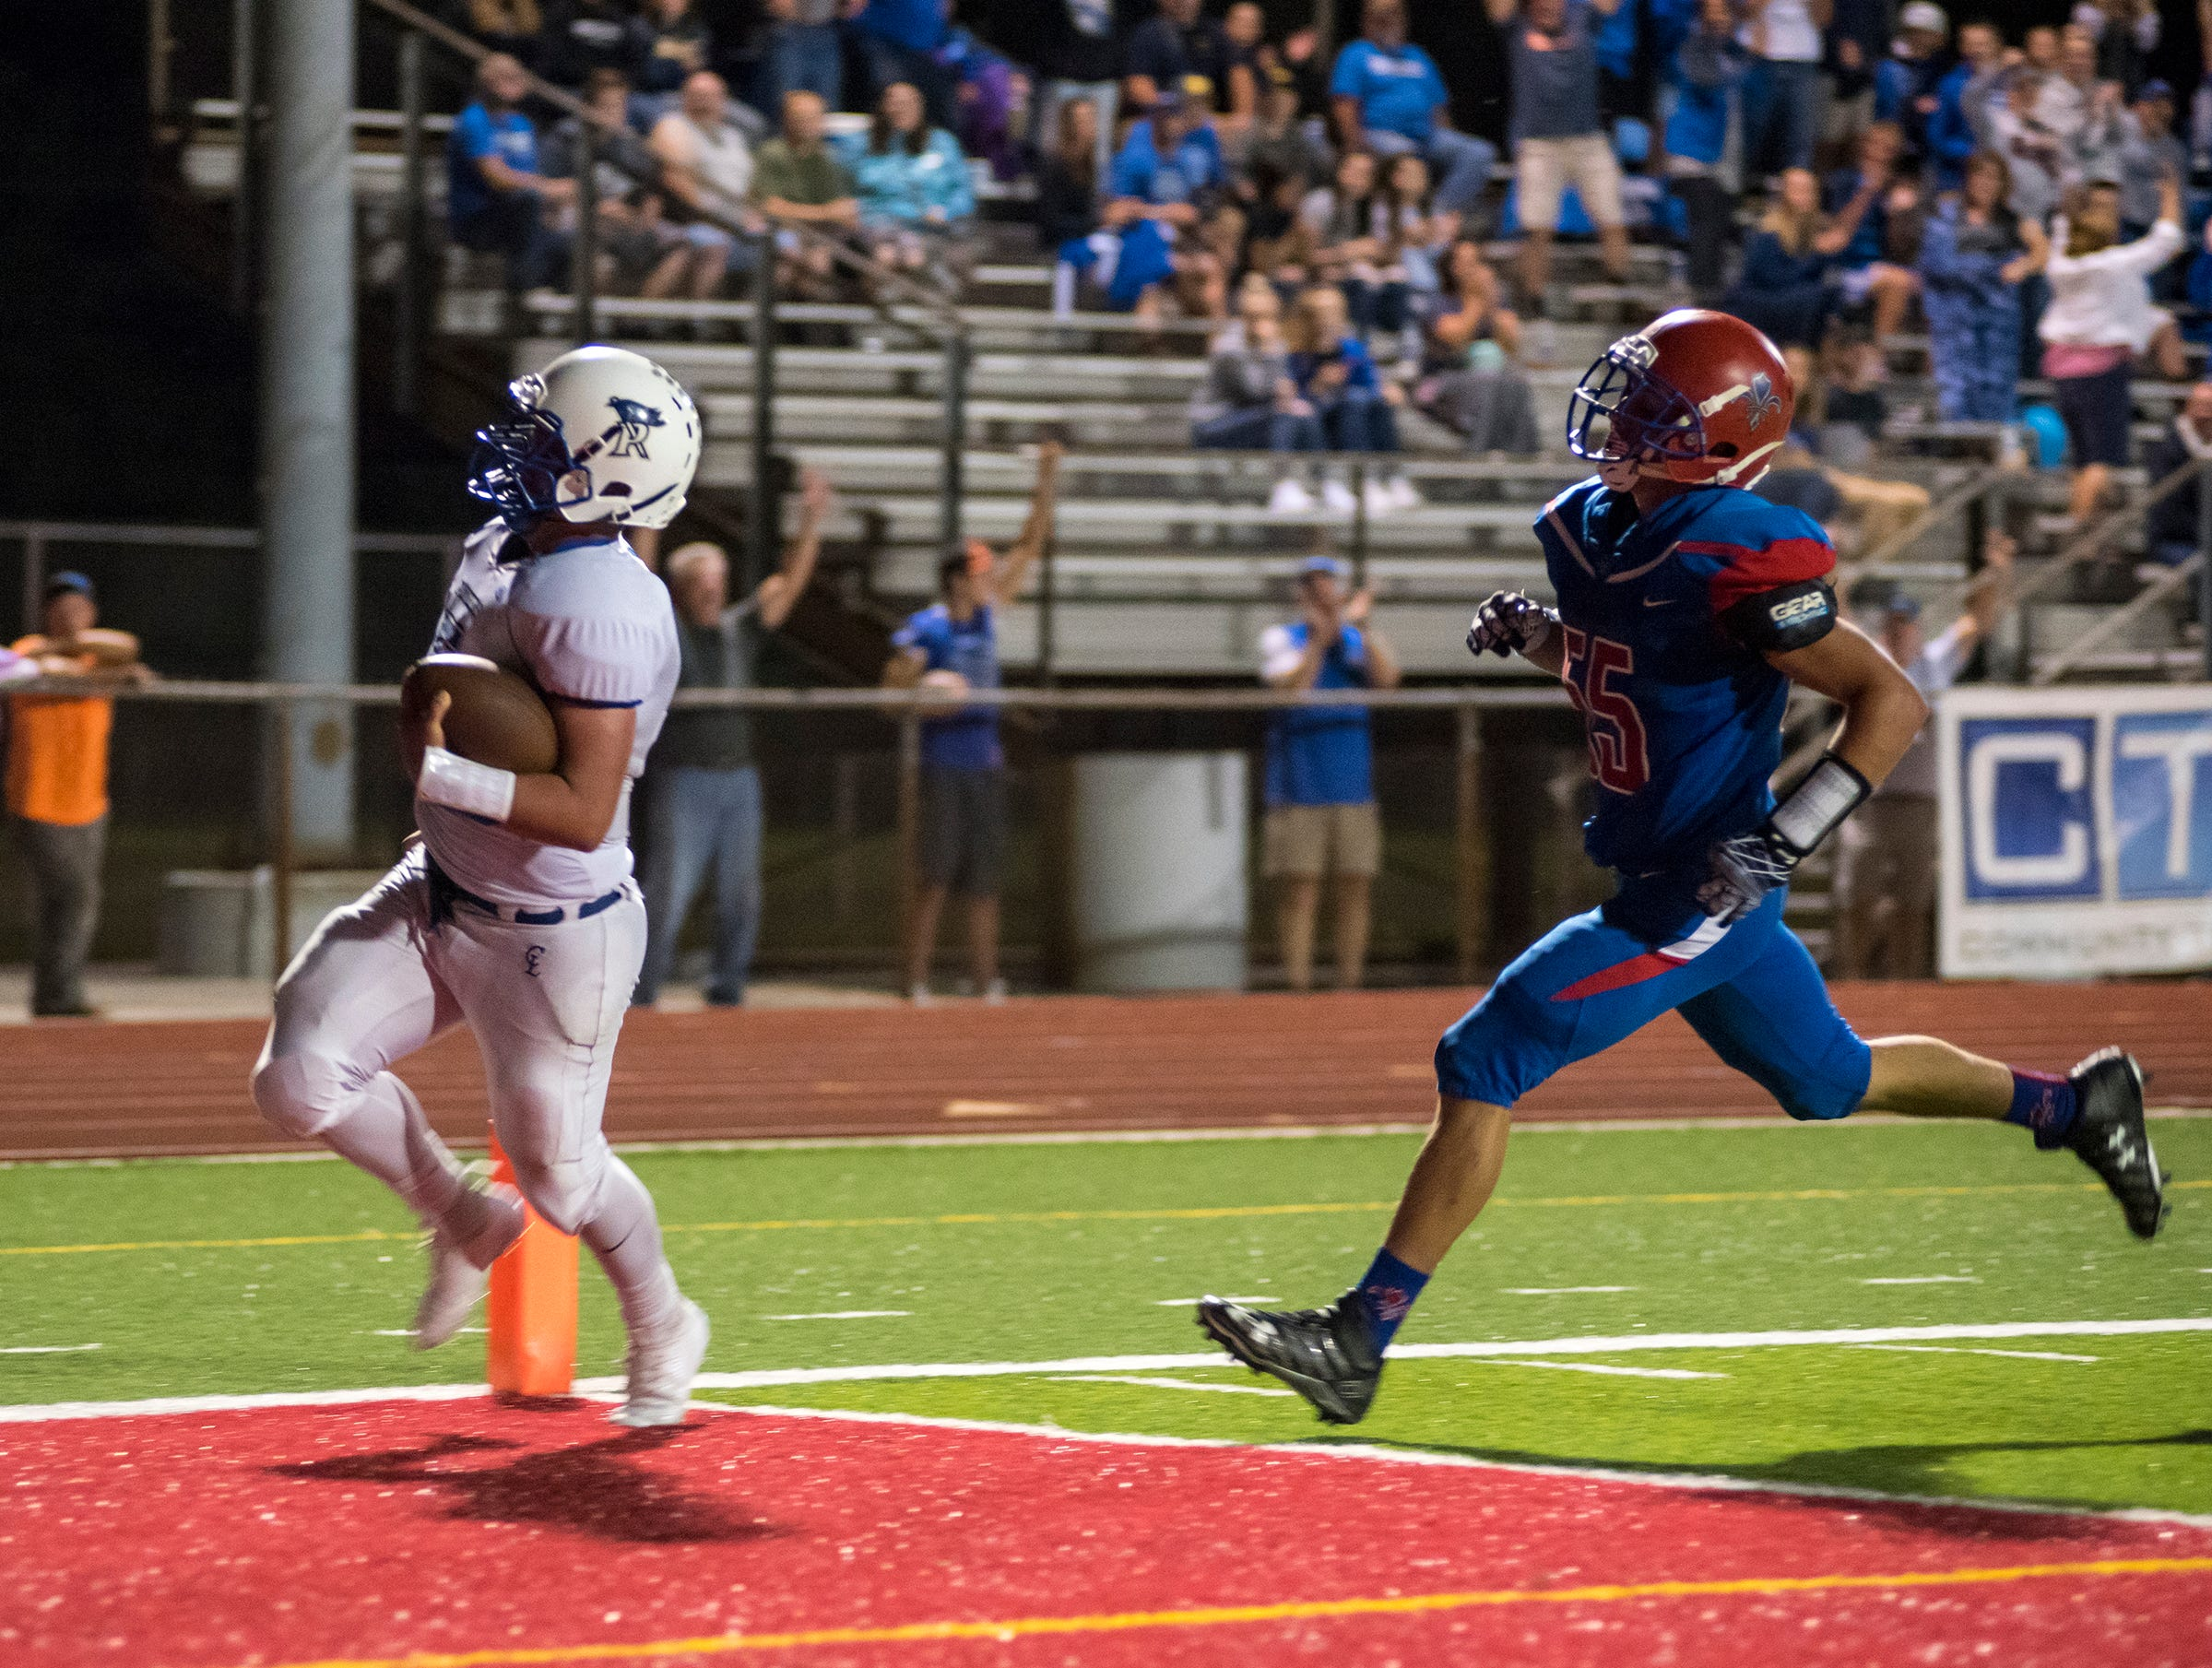 Cros-Lex High School quarterback Joey Johnston completes a 34-yard run for a touchdown during their game against St. Clair High School Thursday, Aug. 23, 2018. Johnston's touchdown brought the Pioneers to 20-21.